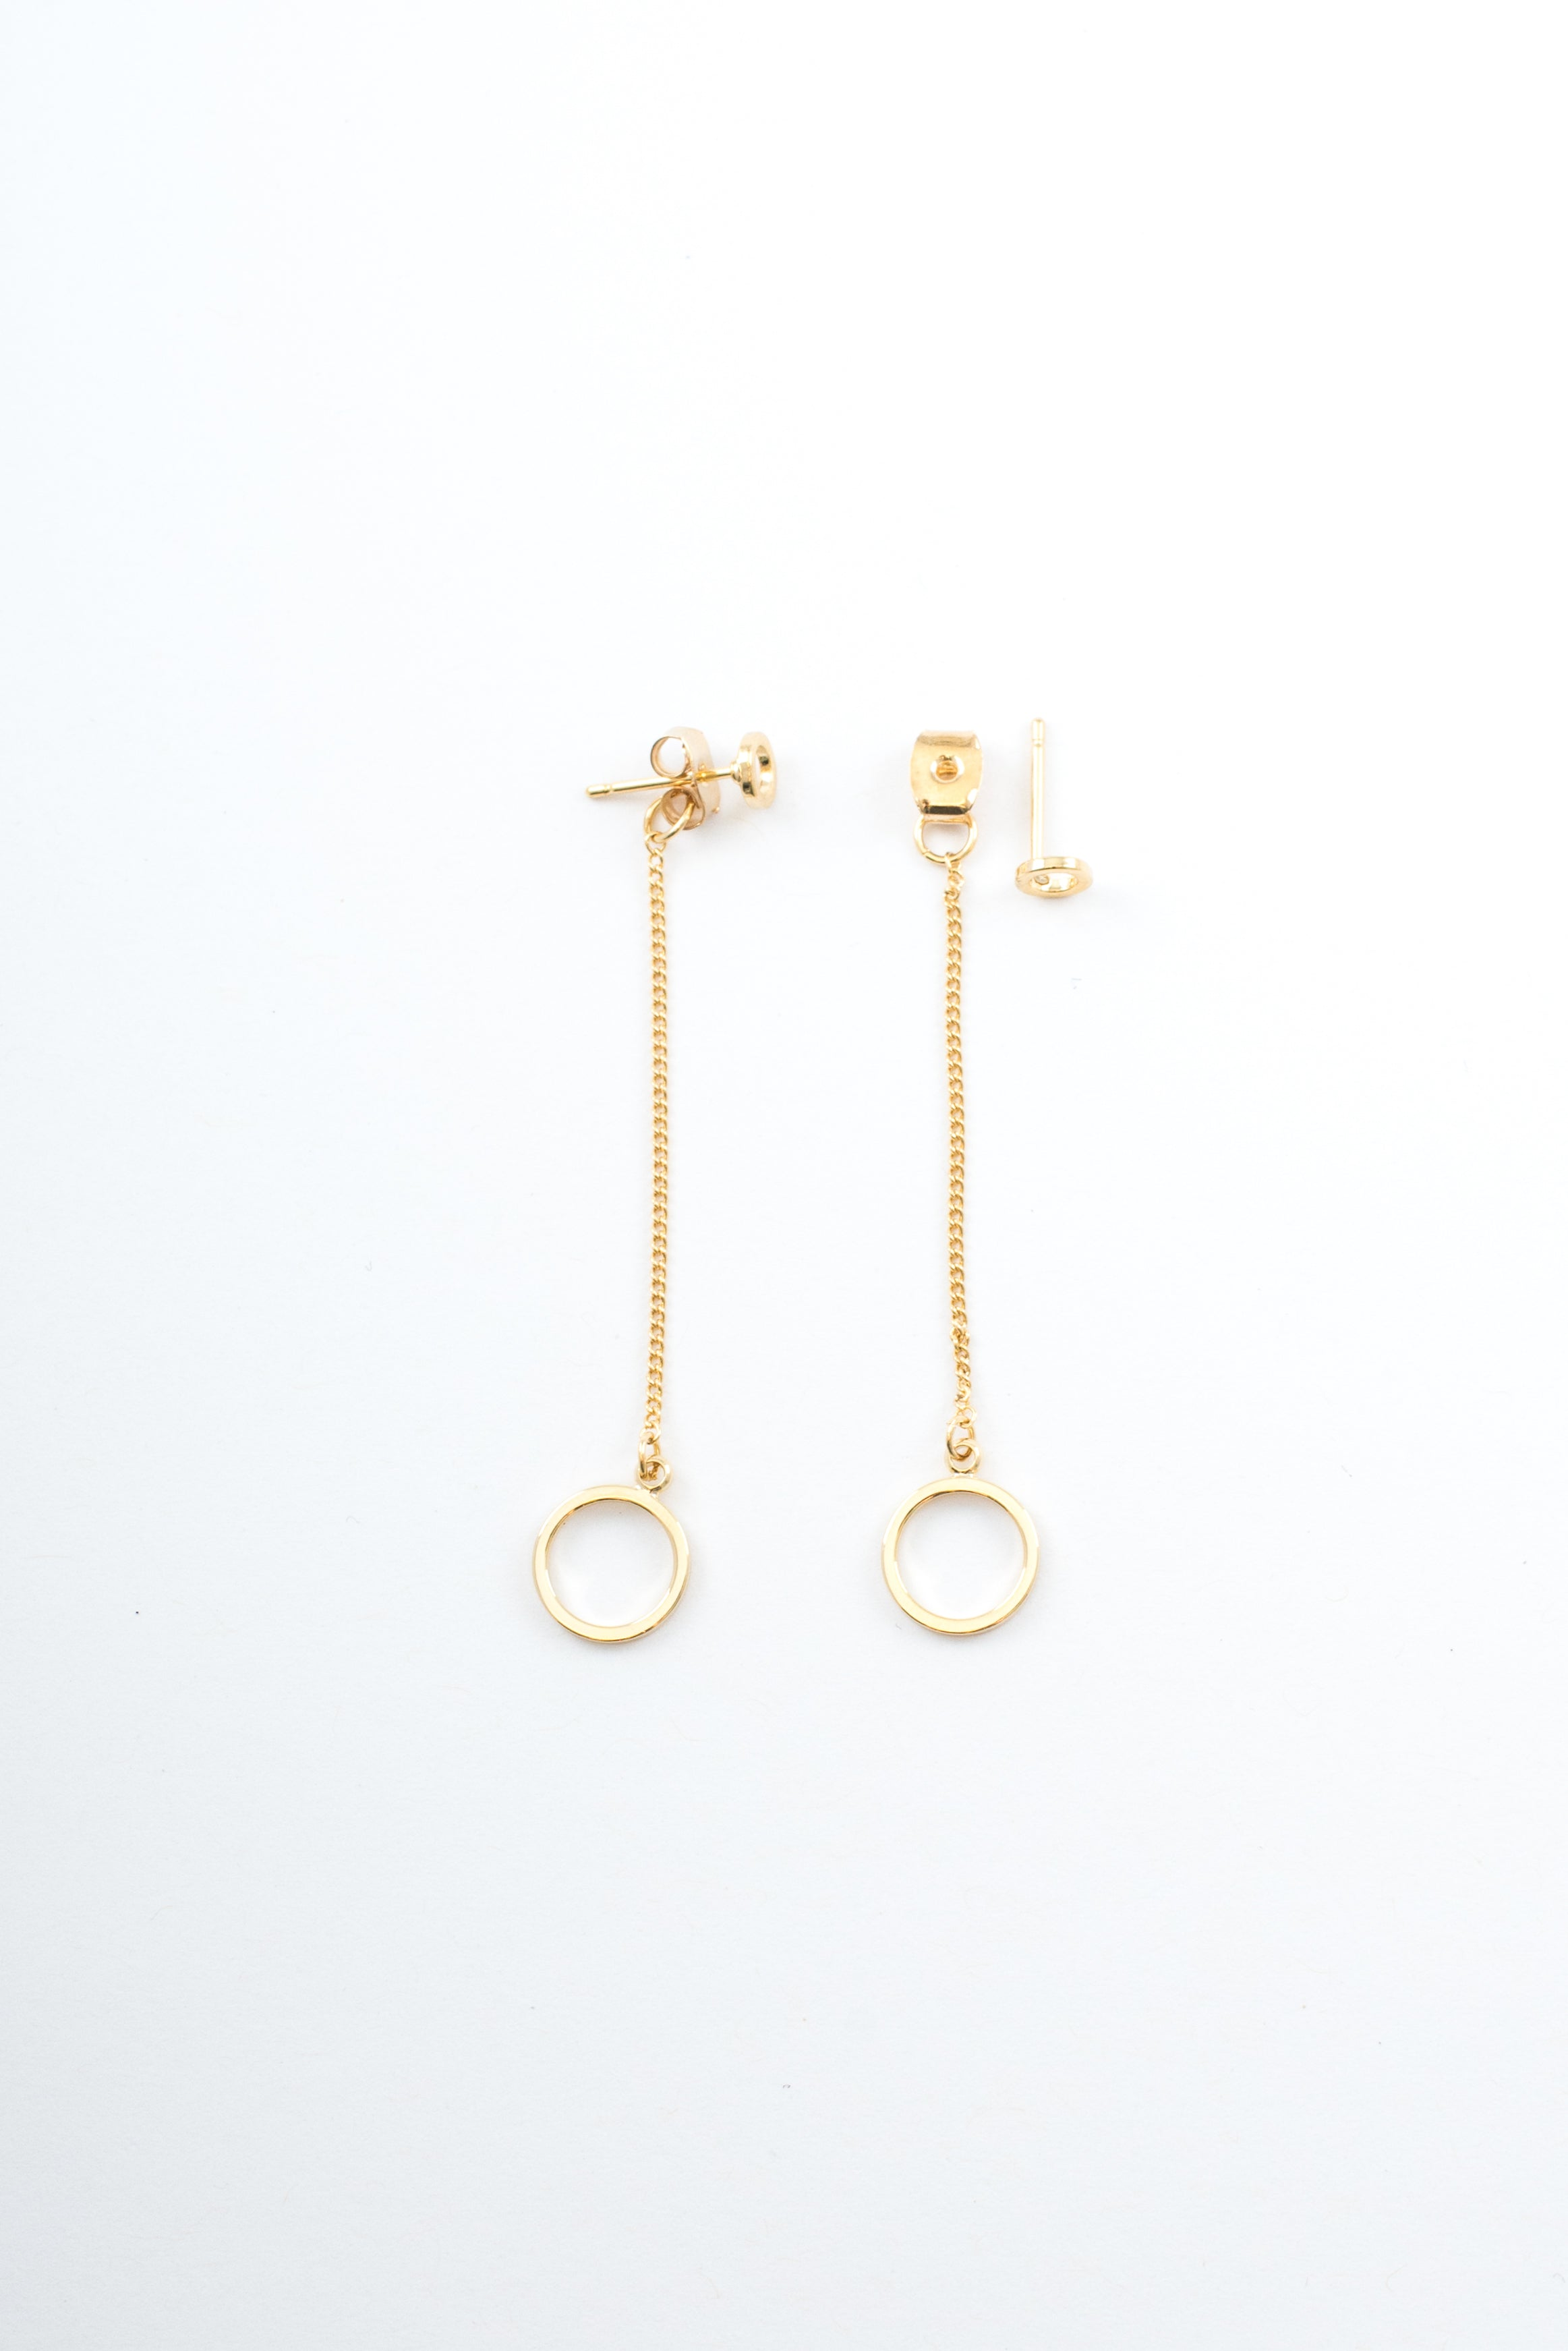 drop earring earrings from zoom jewellery infinity simply sterling silver